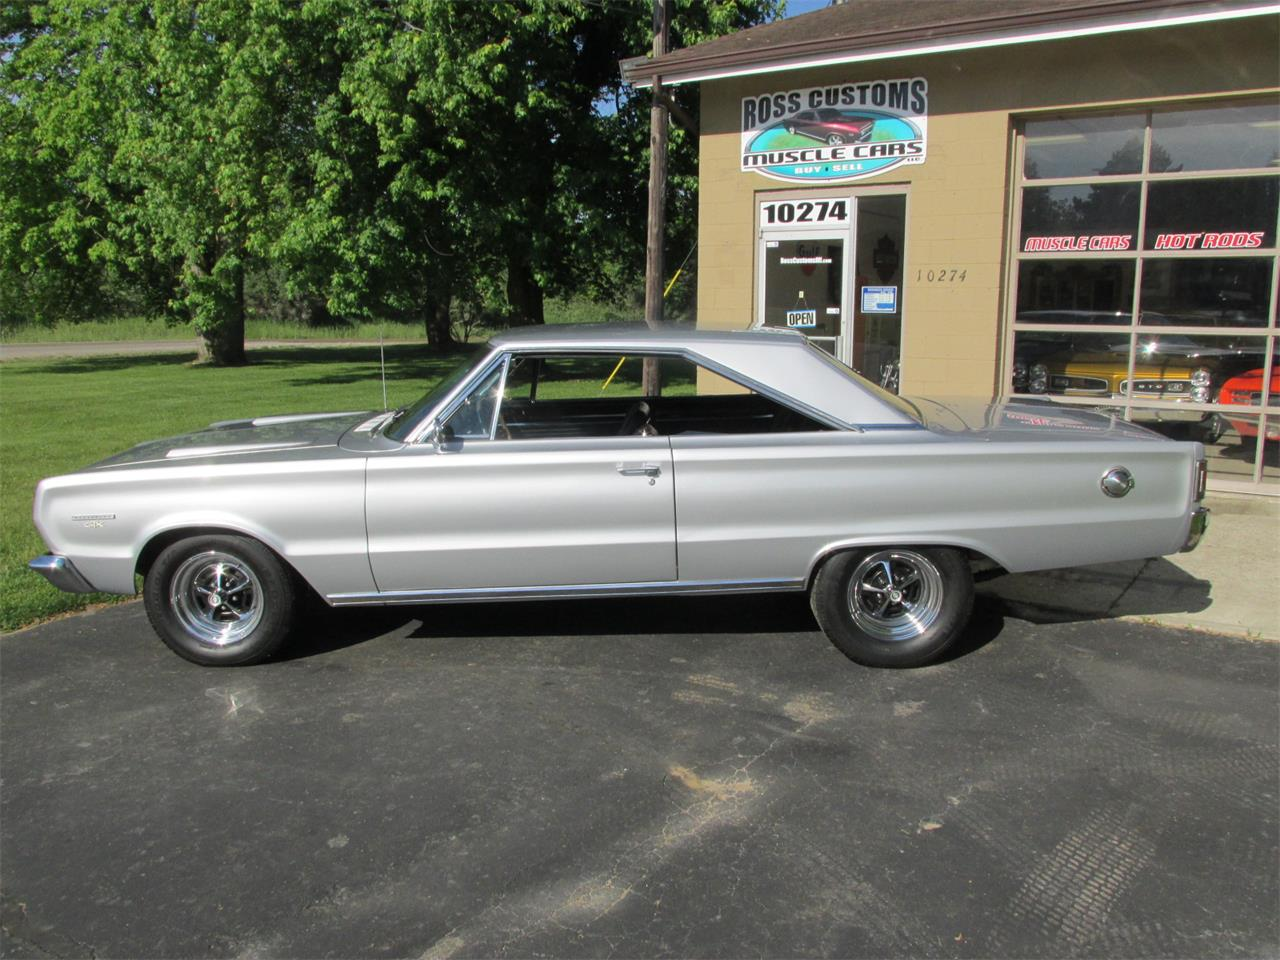 Large Picture of '67 Plymouth GTX Offered by Ross Custom Muscle Cars LLC - QCBG